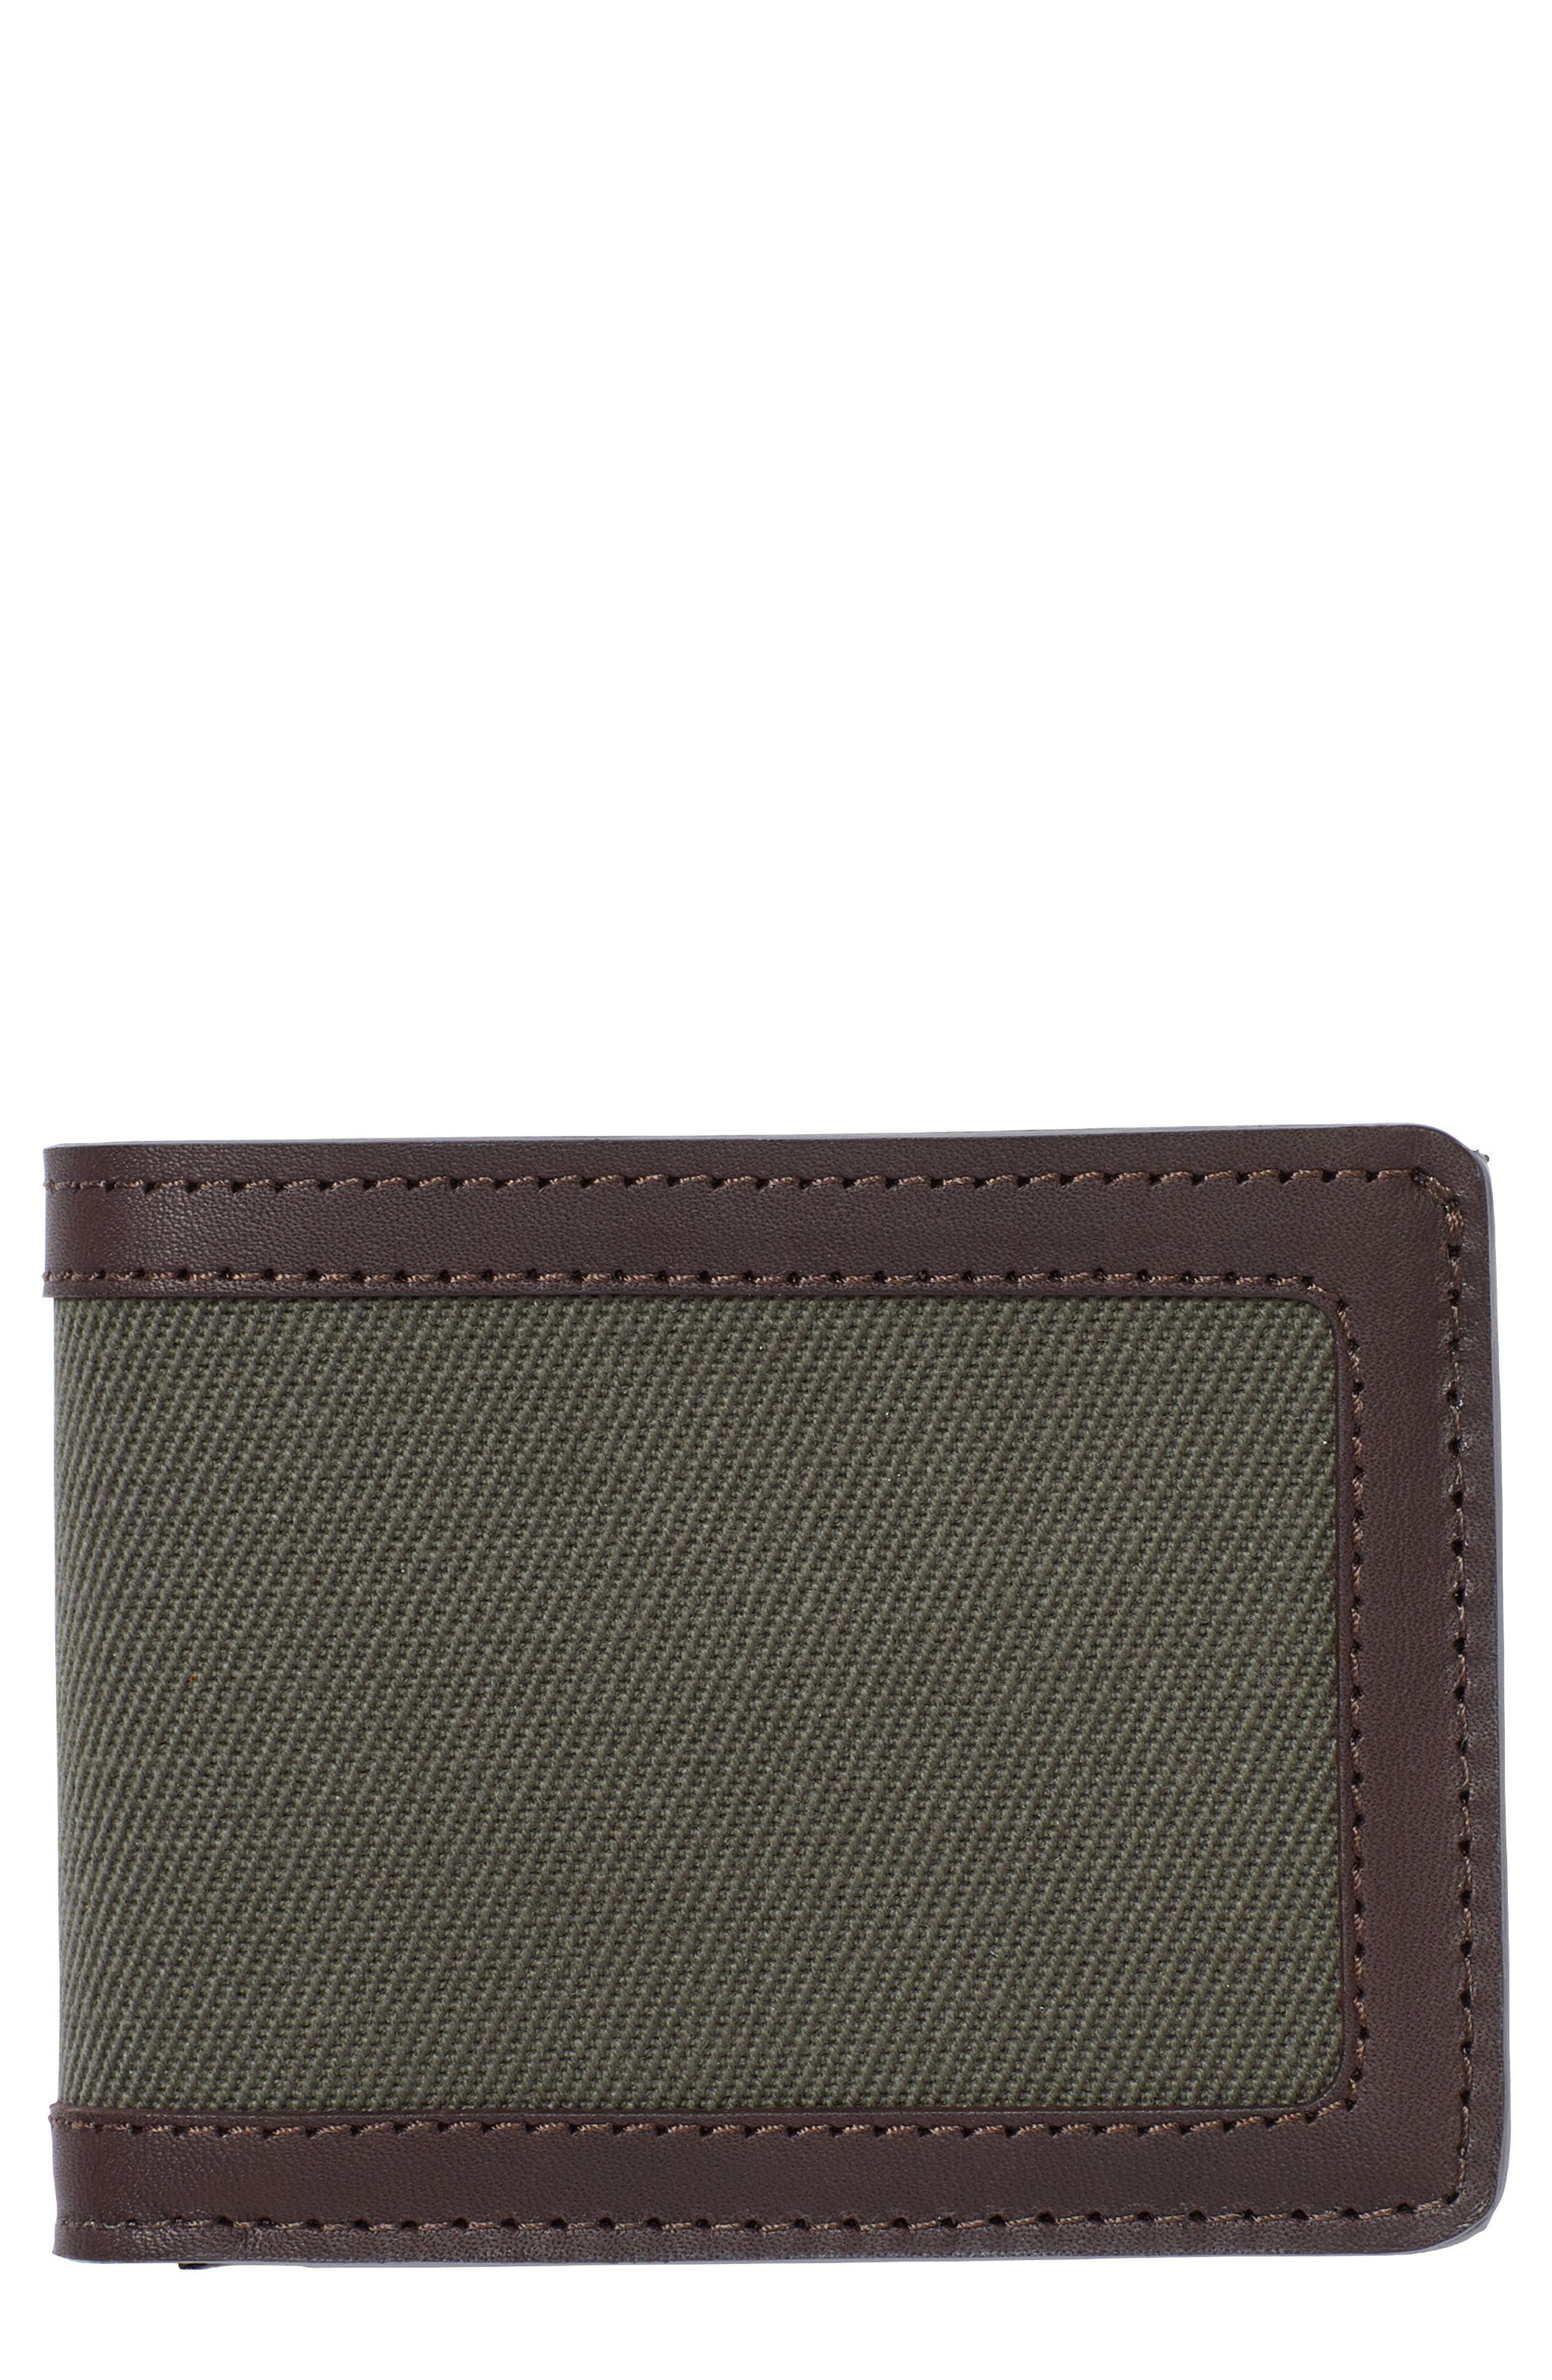 Outfitter Leather & Canvas Bifold Wallet,                         Main,                         color, Otter Green